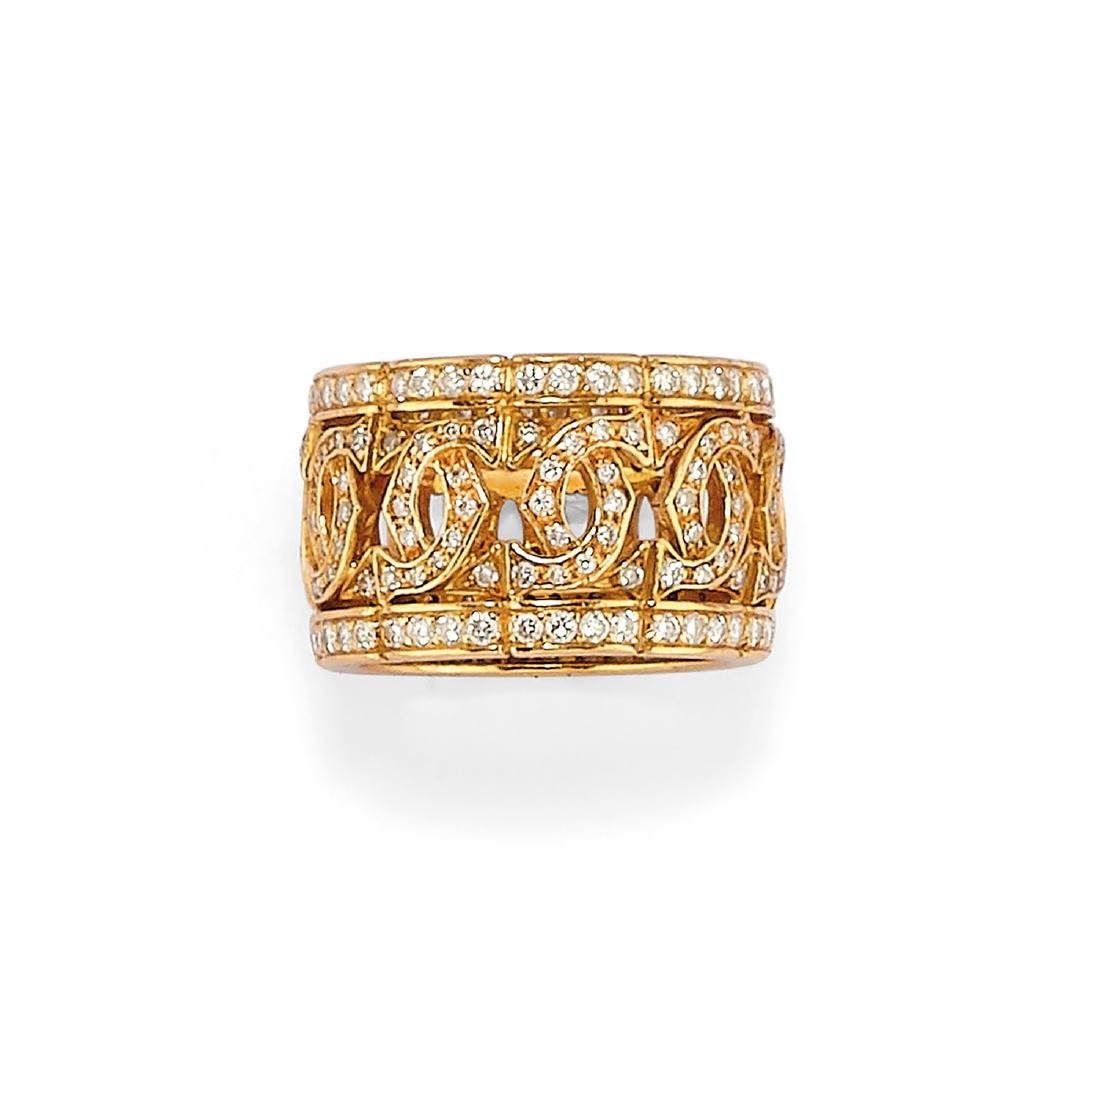 Cartier  - A 18K yellow gold and diamond ring, Cartier